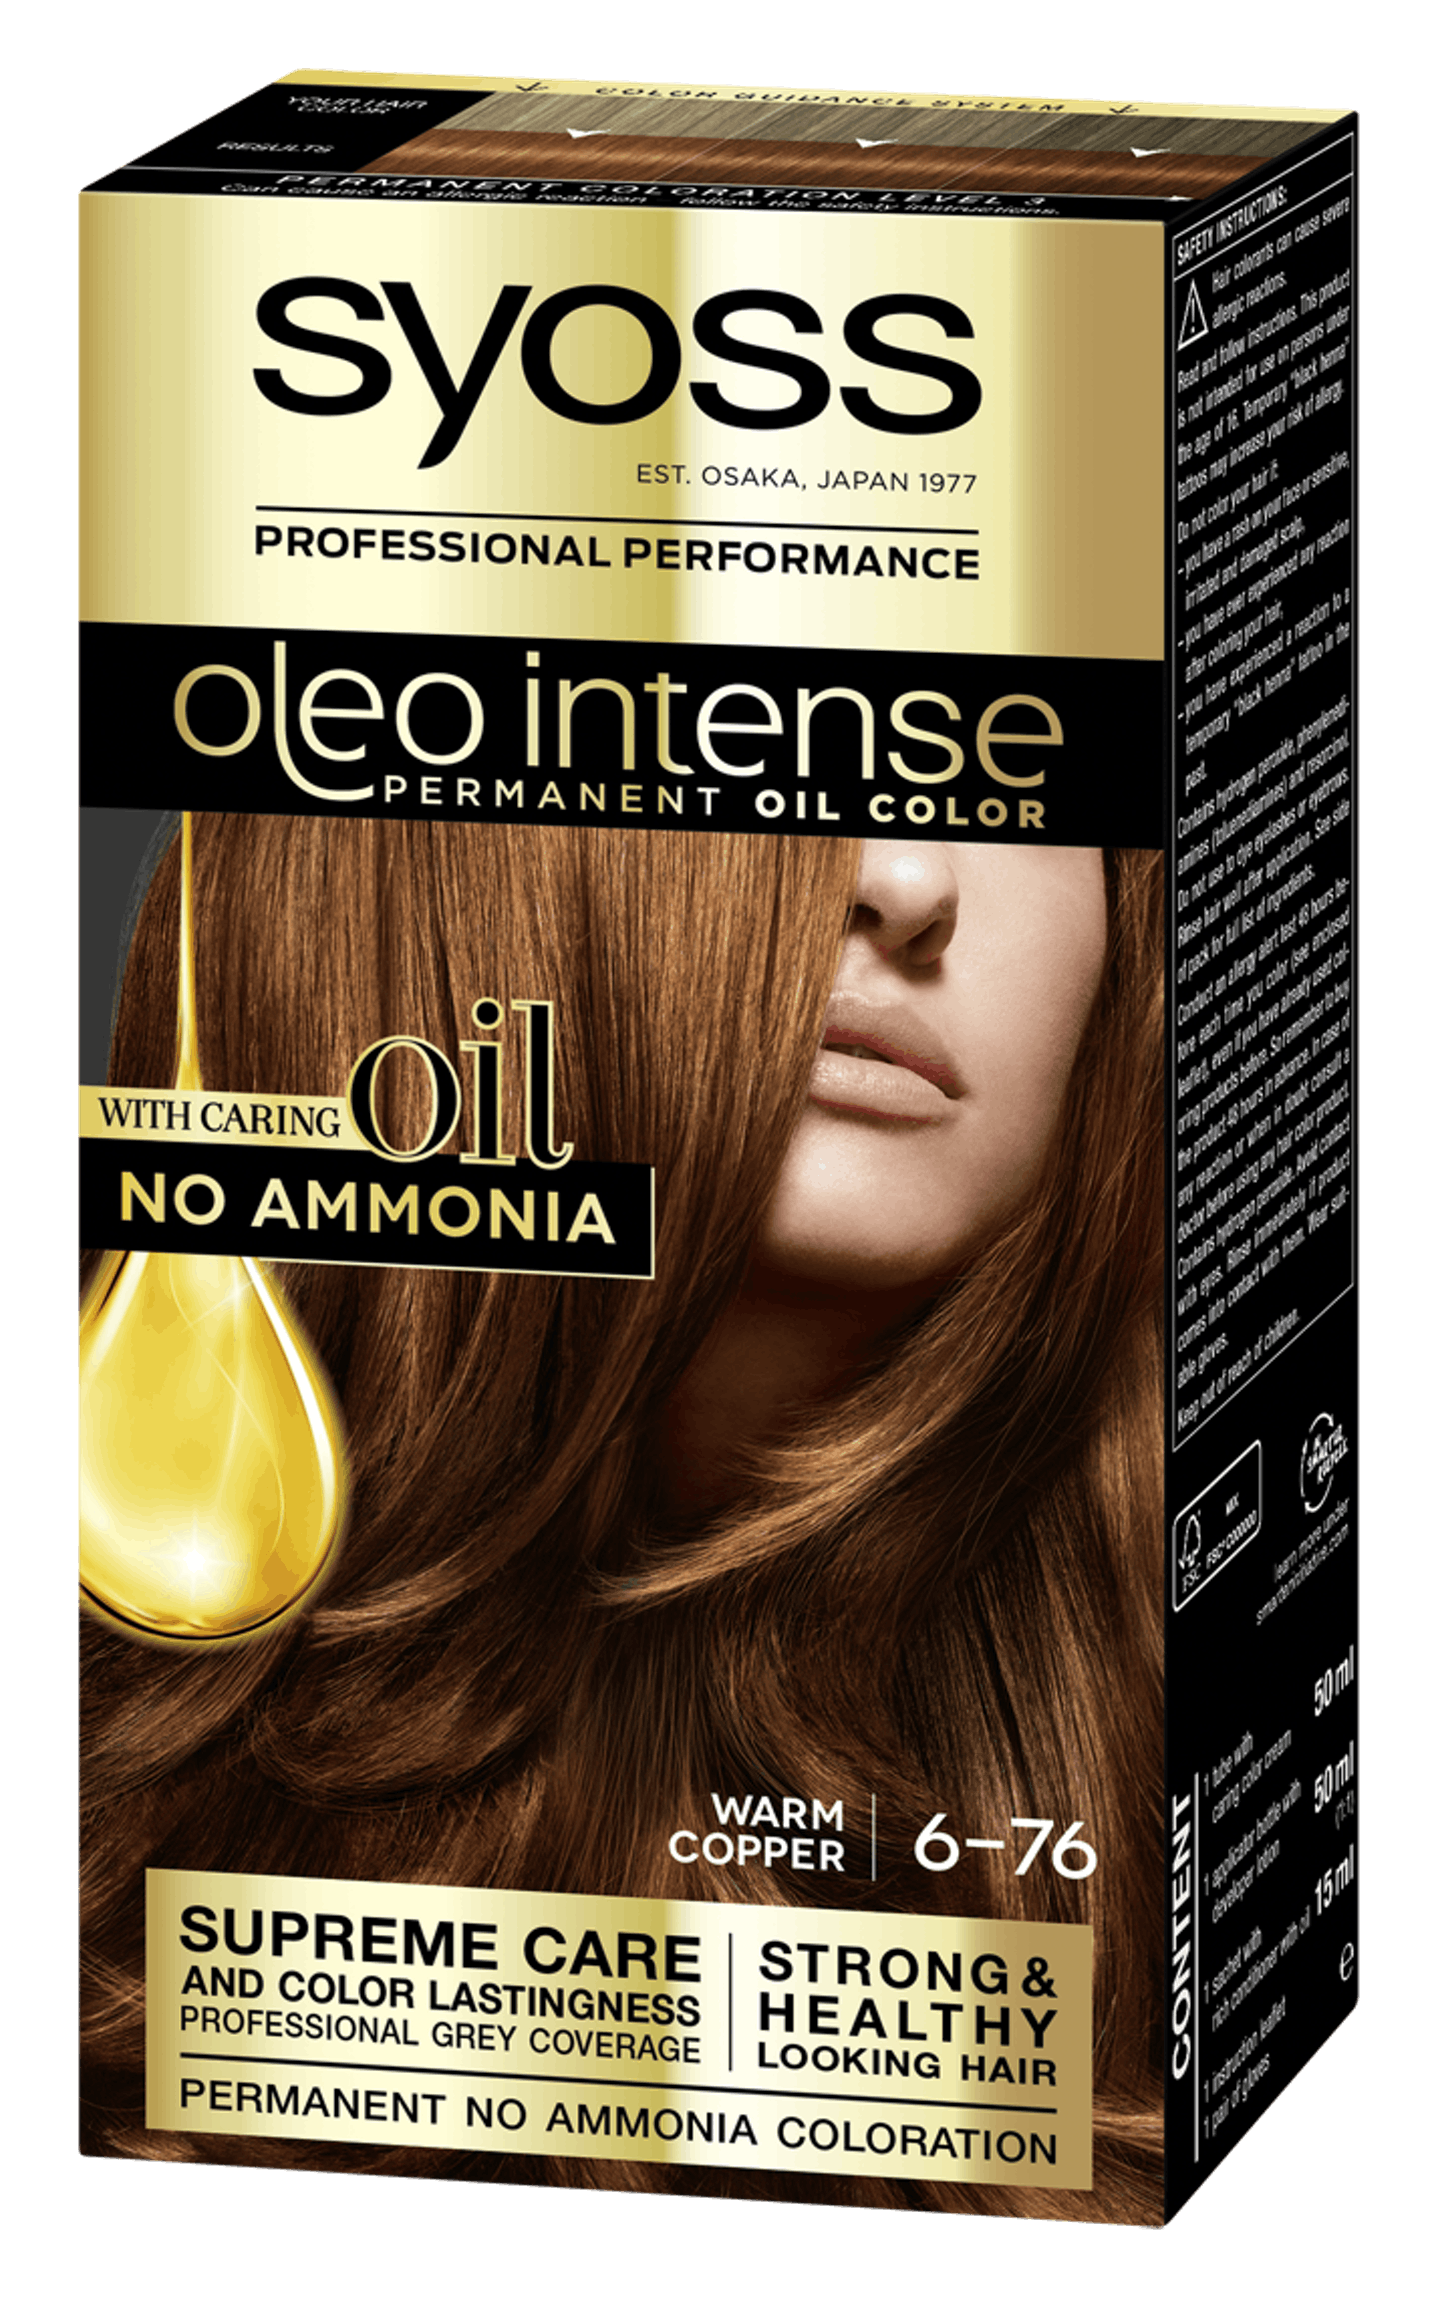 Syoss Oleo Intense Permanent Oil Color 6-76 Warm Copper